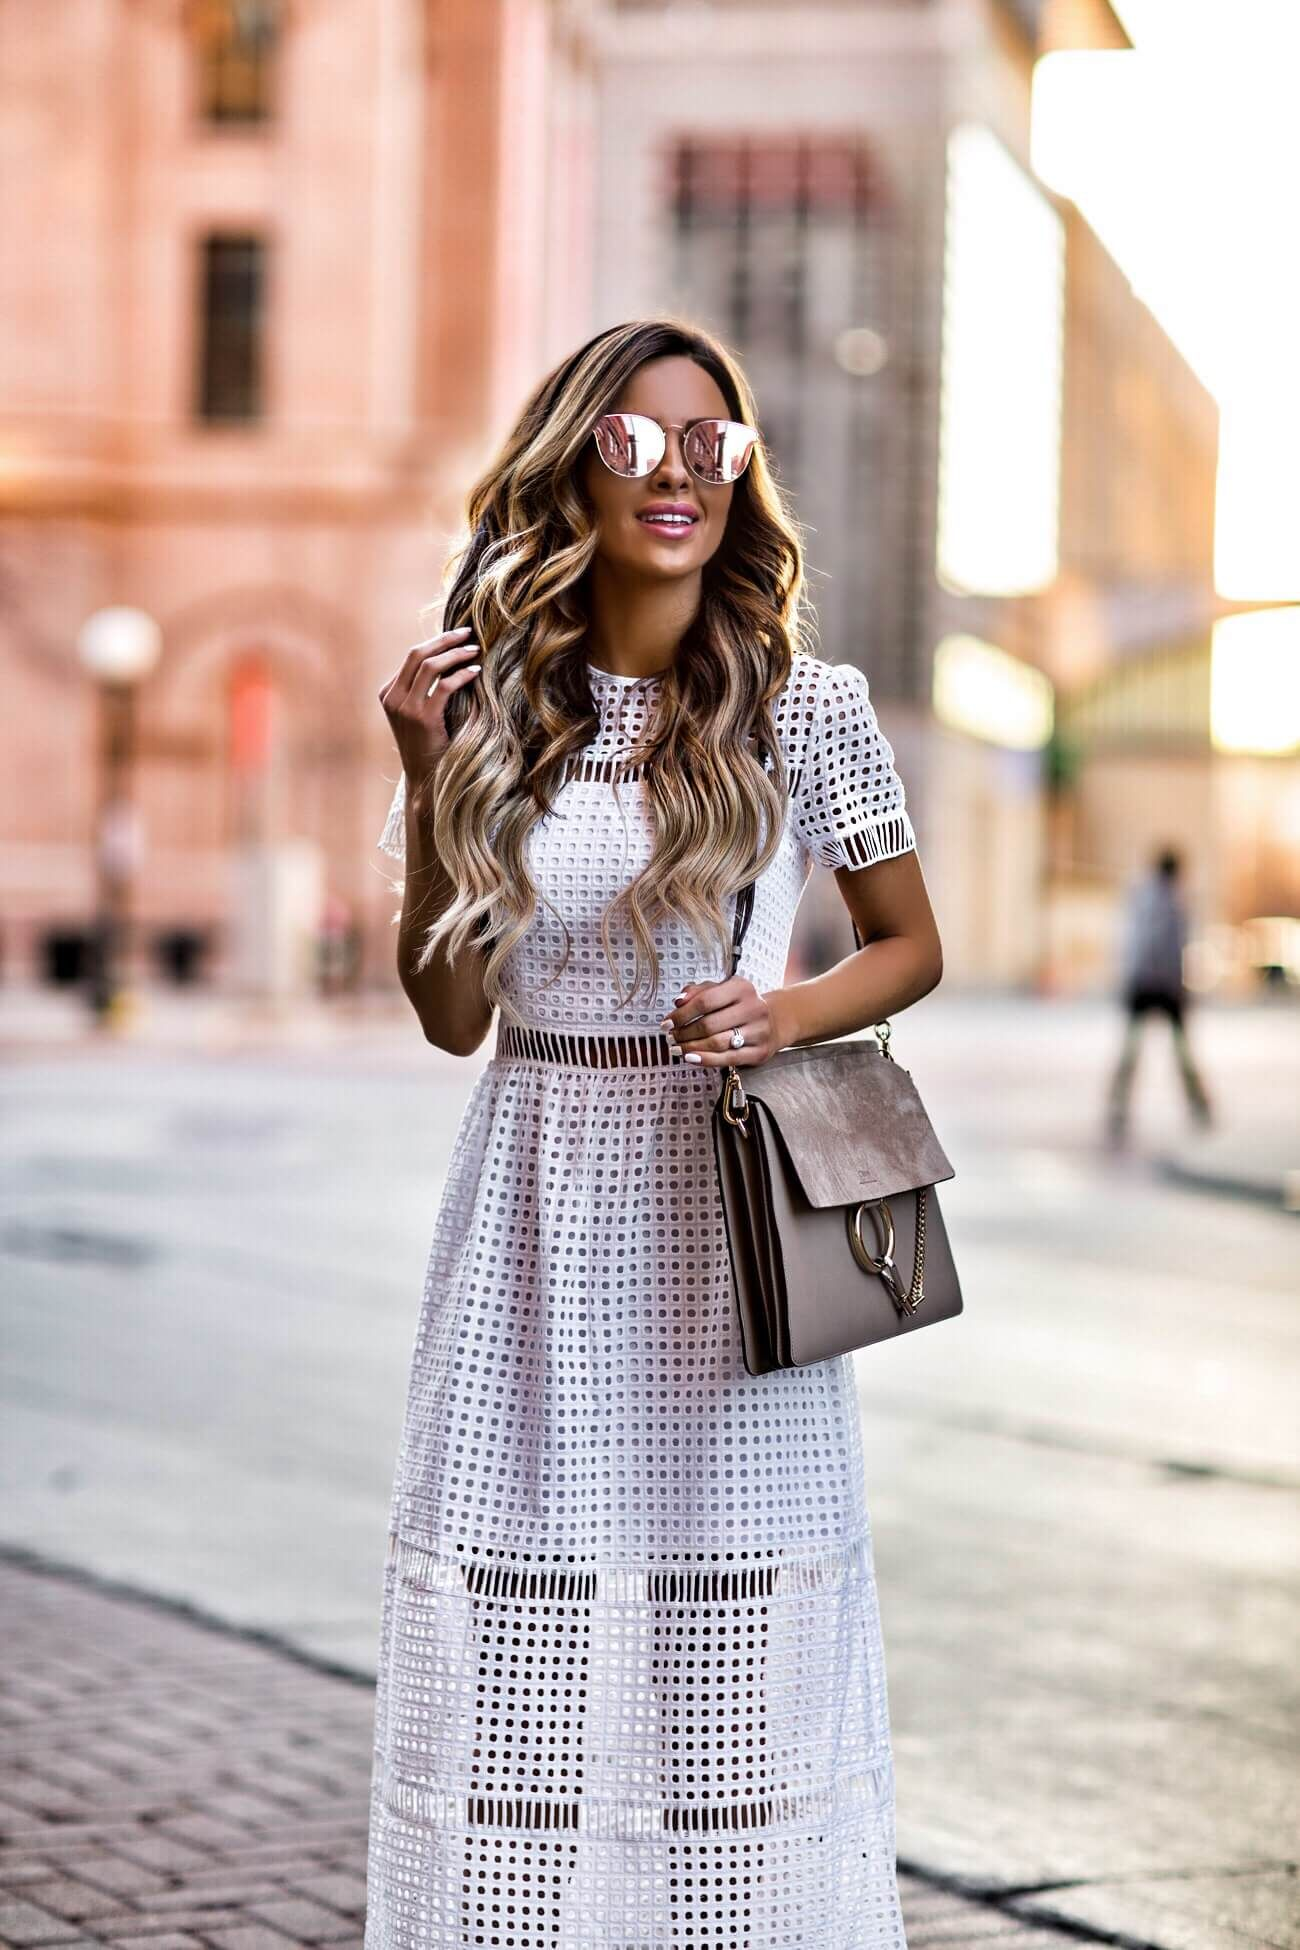 c5f063295db mn fashion blogger mia mia mine wearing a white eyelet dress and chloe faye  medium bag